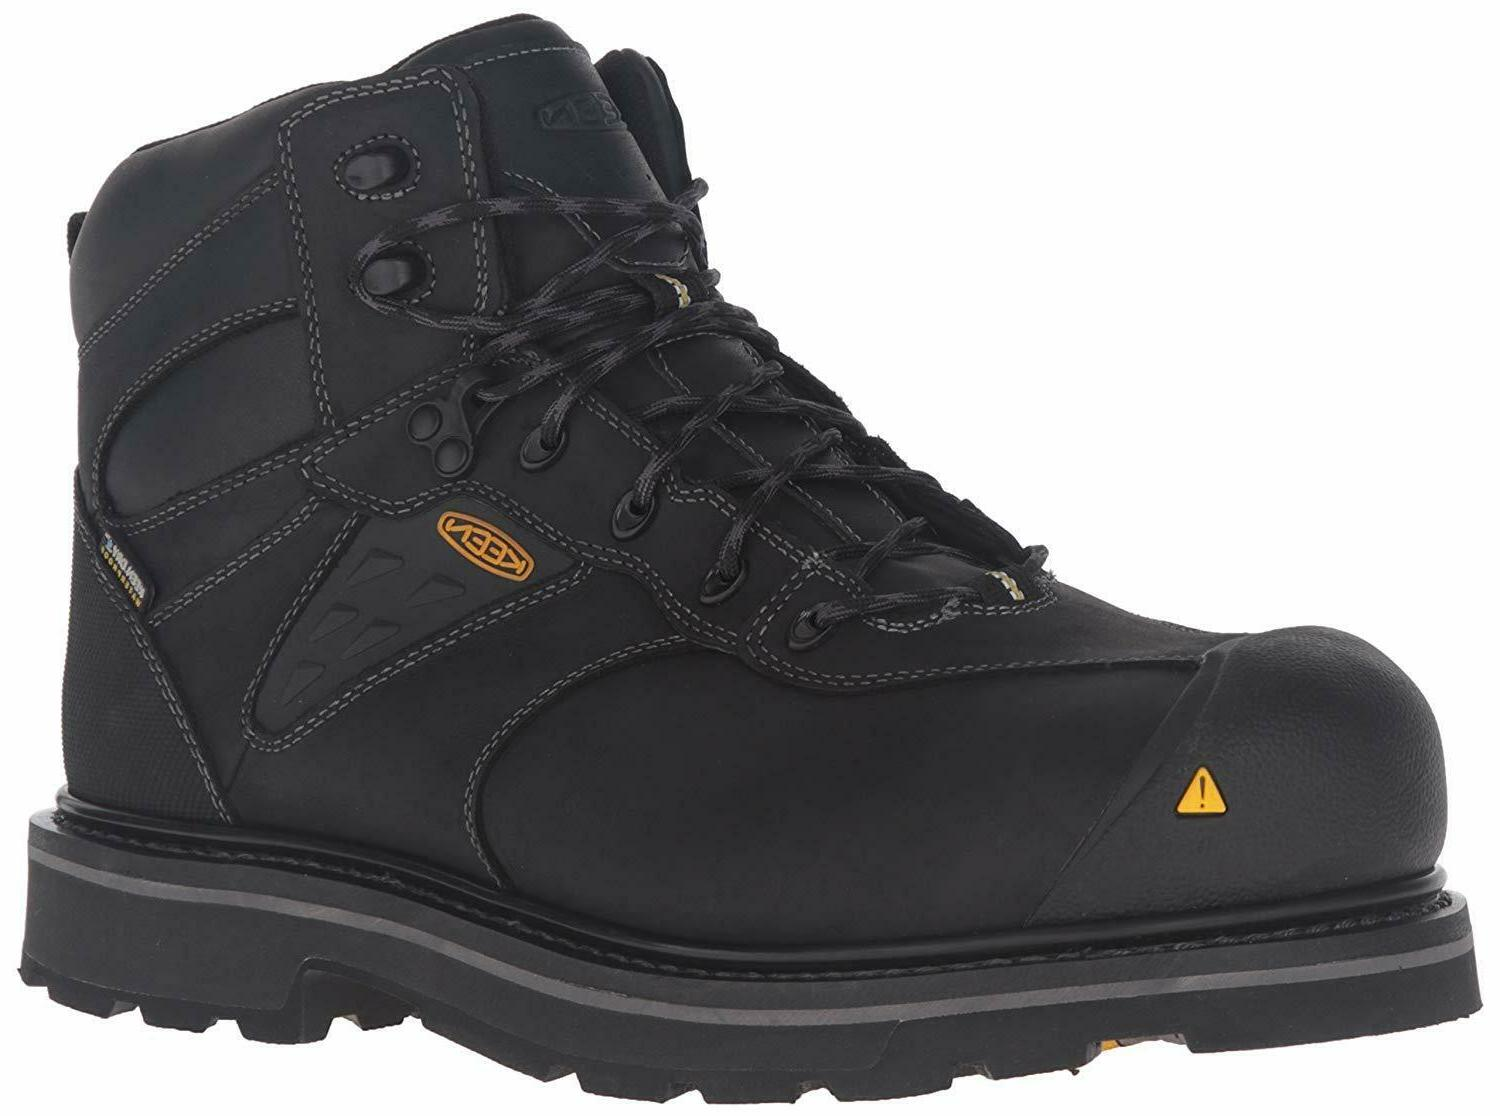 Keen Utility Men's 1015395 Tacoma Waterproof Composite Toe W